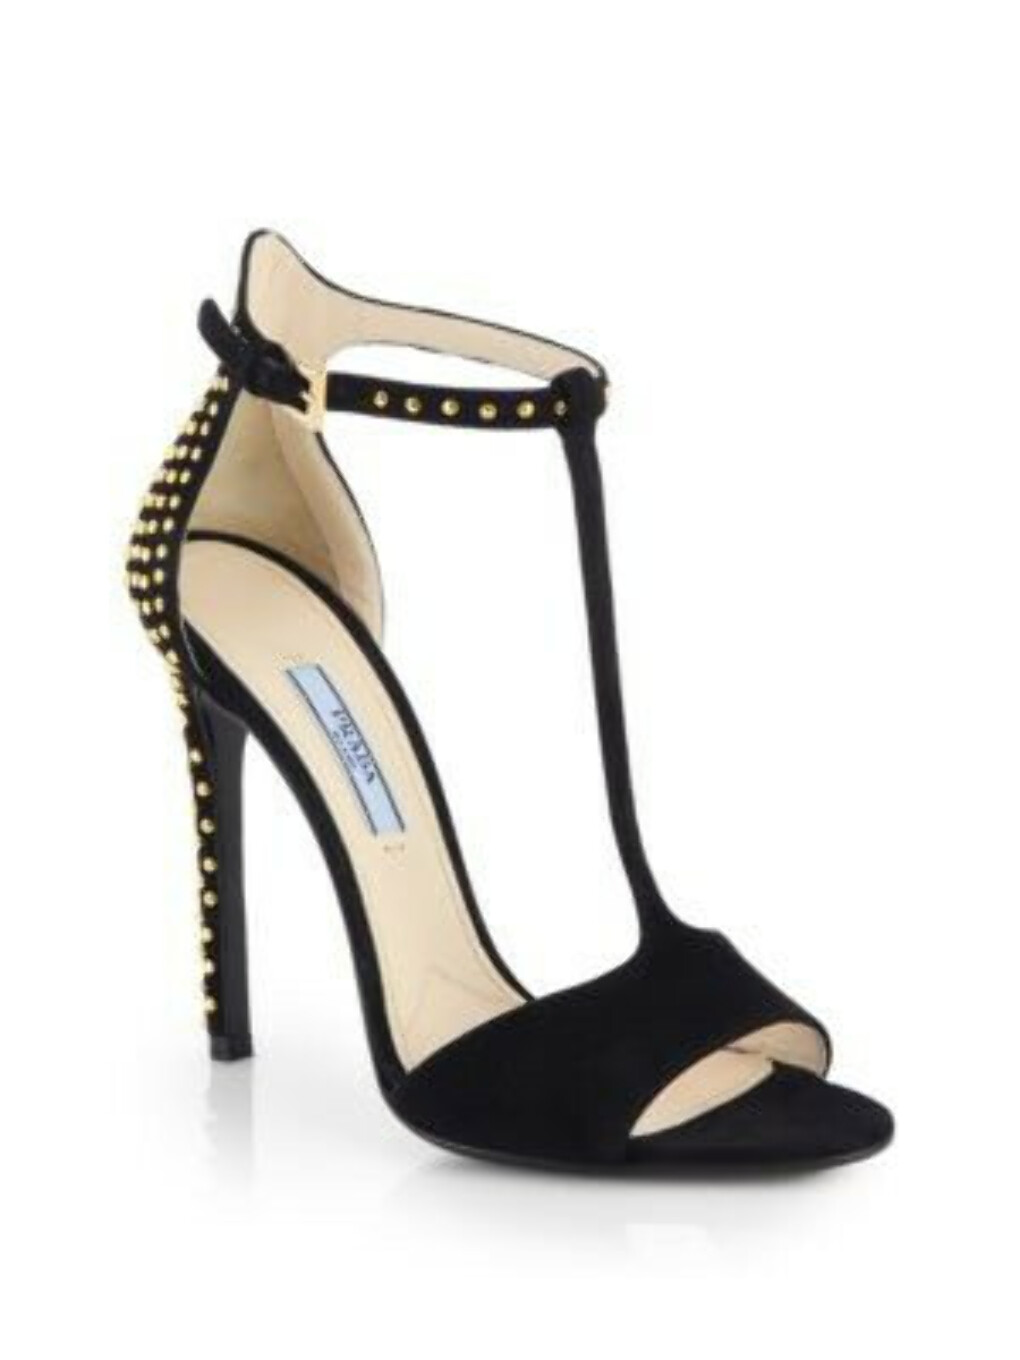 Prada - Studded Suede Ankle-Strap Sandals